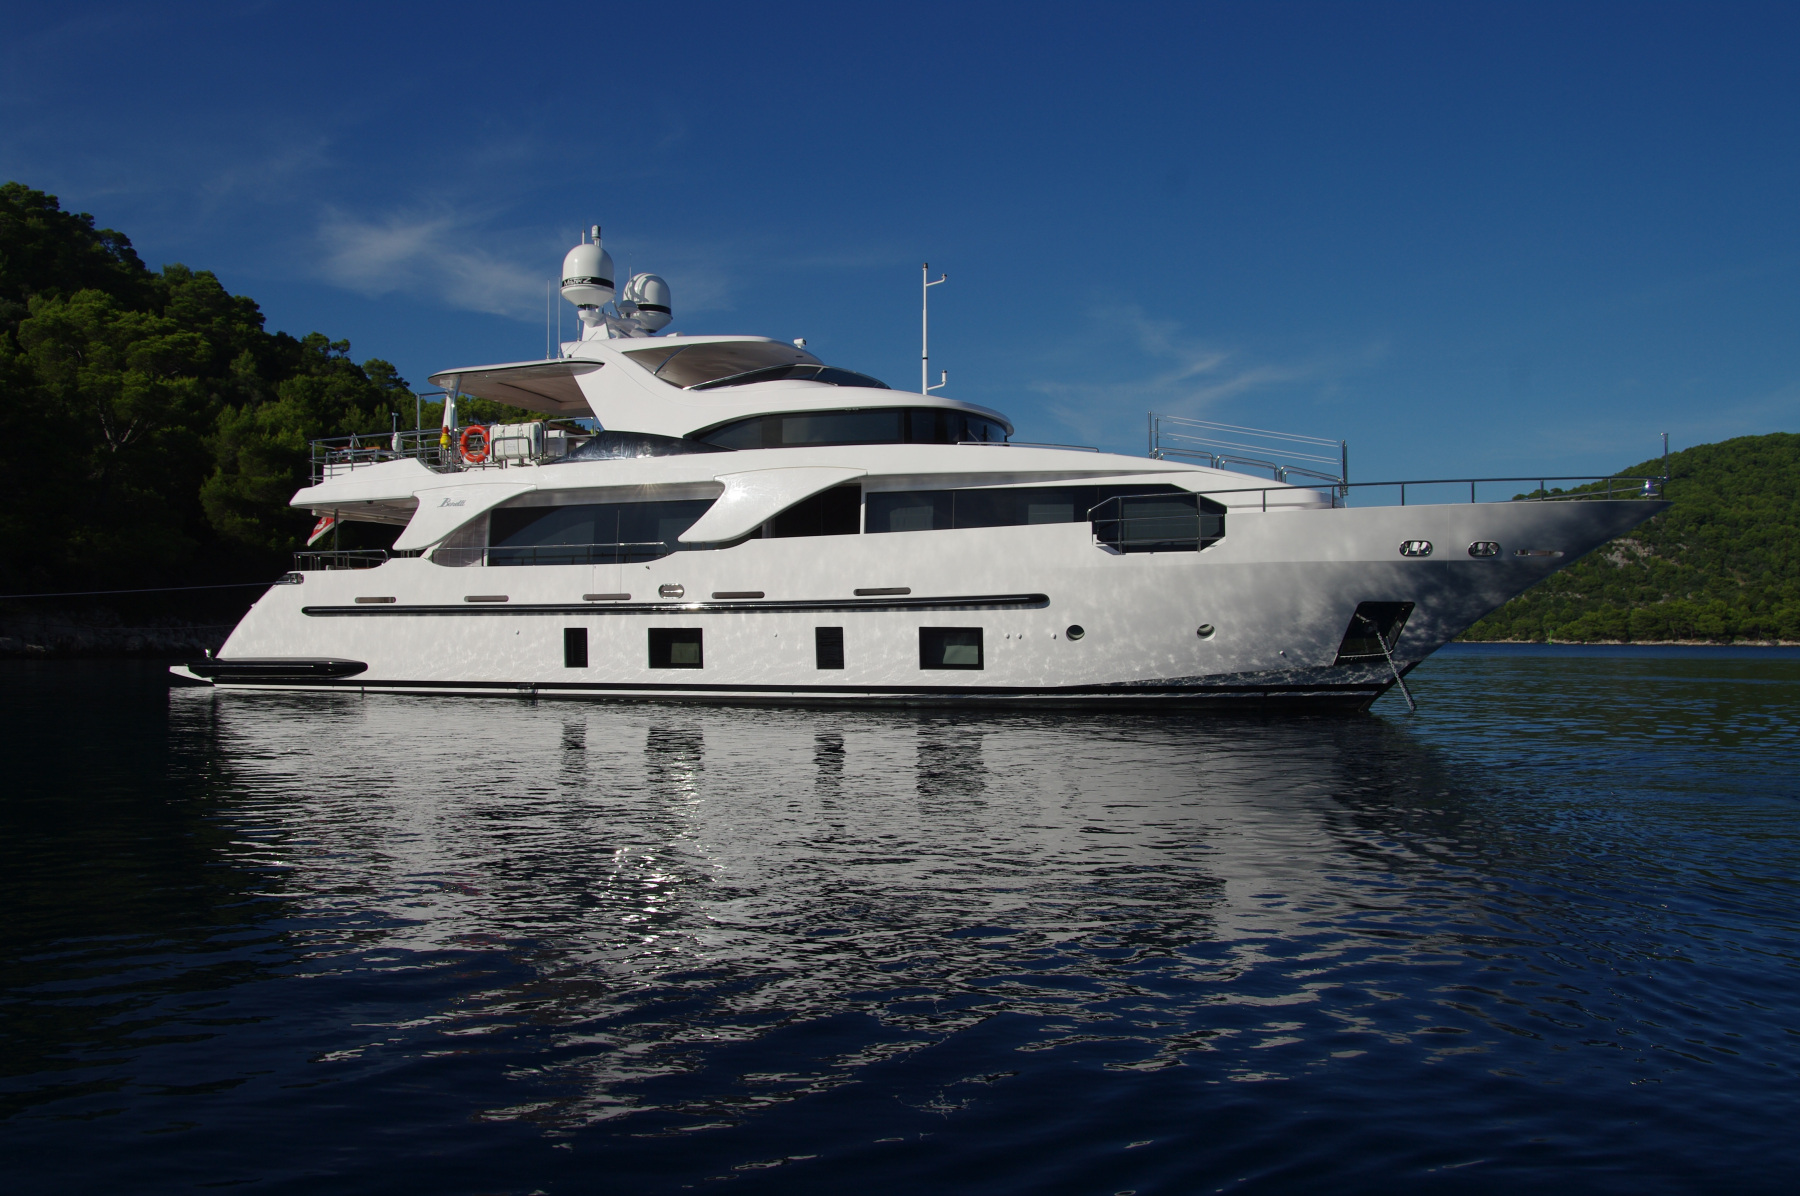 Port Yachting - Seanet